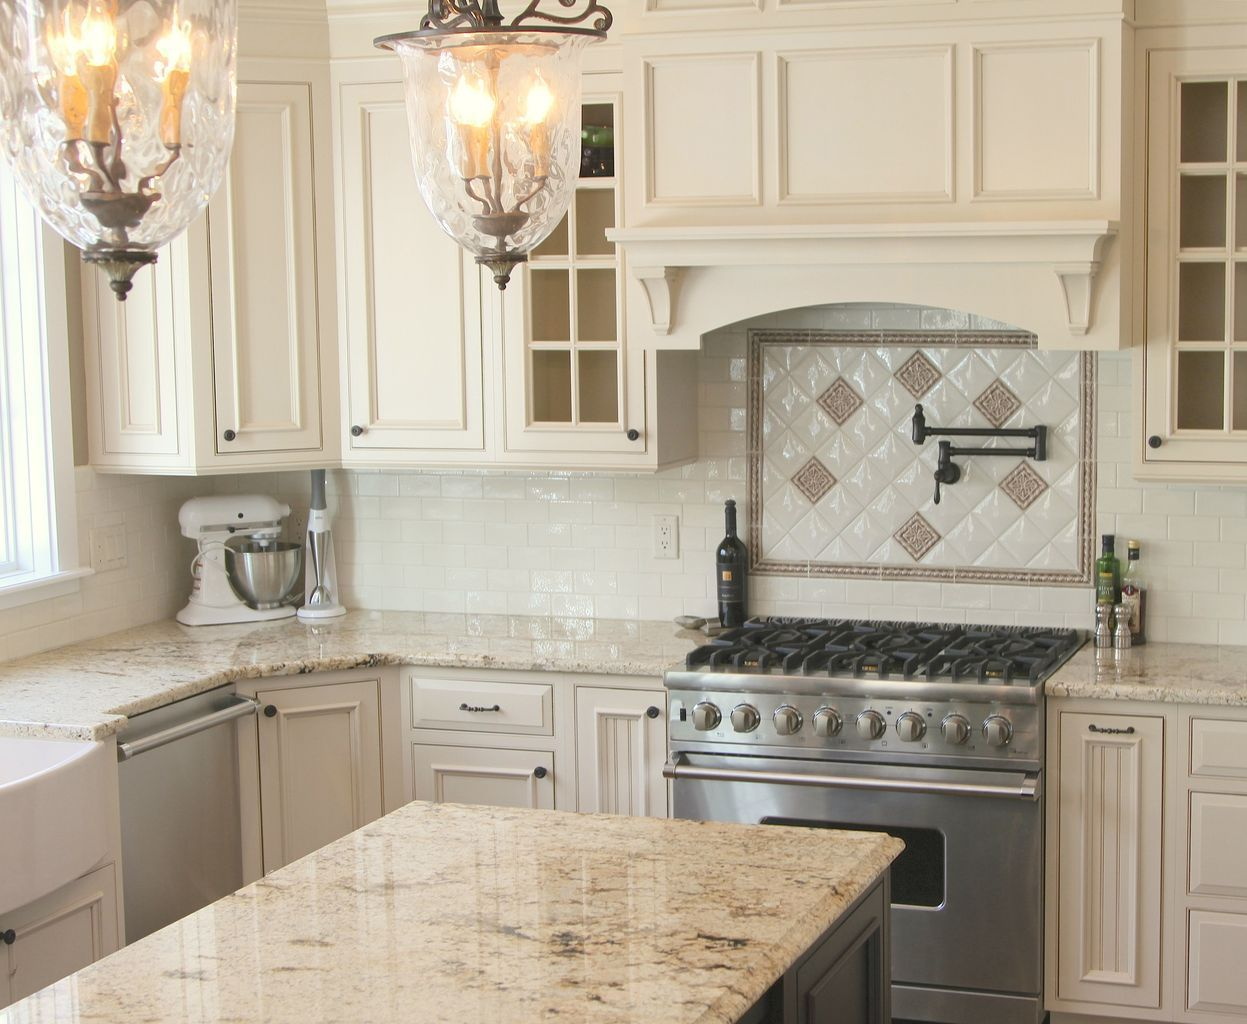 sink kitchen cabinets tall table and chairs for this color slightly darker counter dark floors stainless